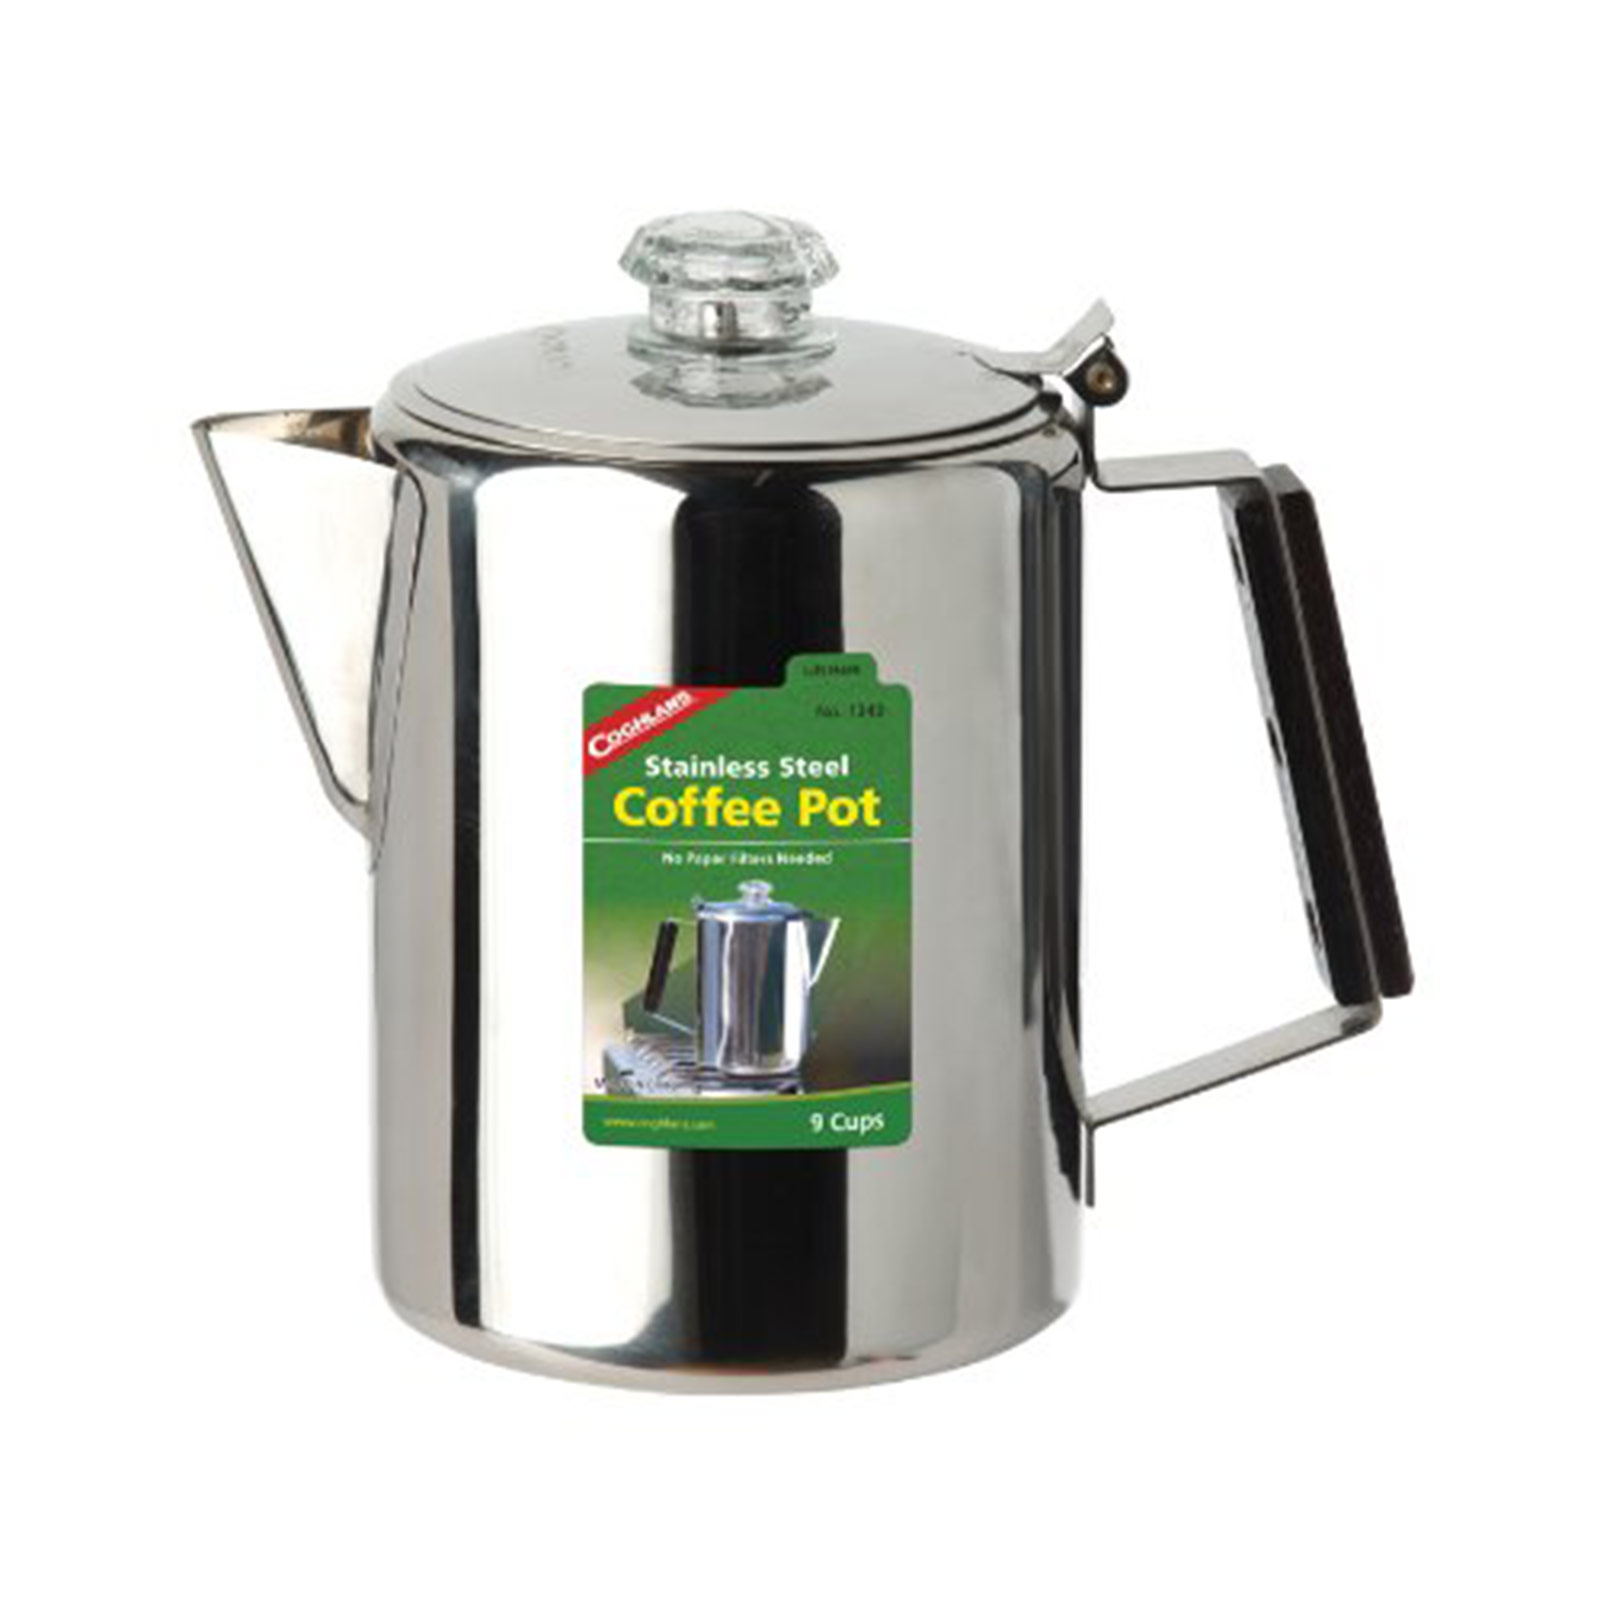 Coghlan's 9-Cup Coffee Percolator, 1340, Stainless Steel